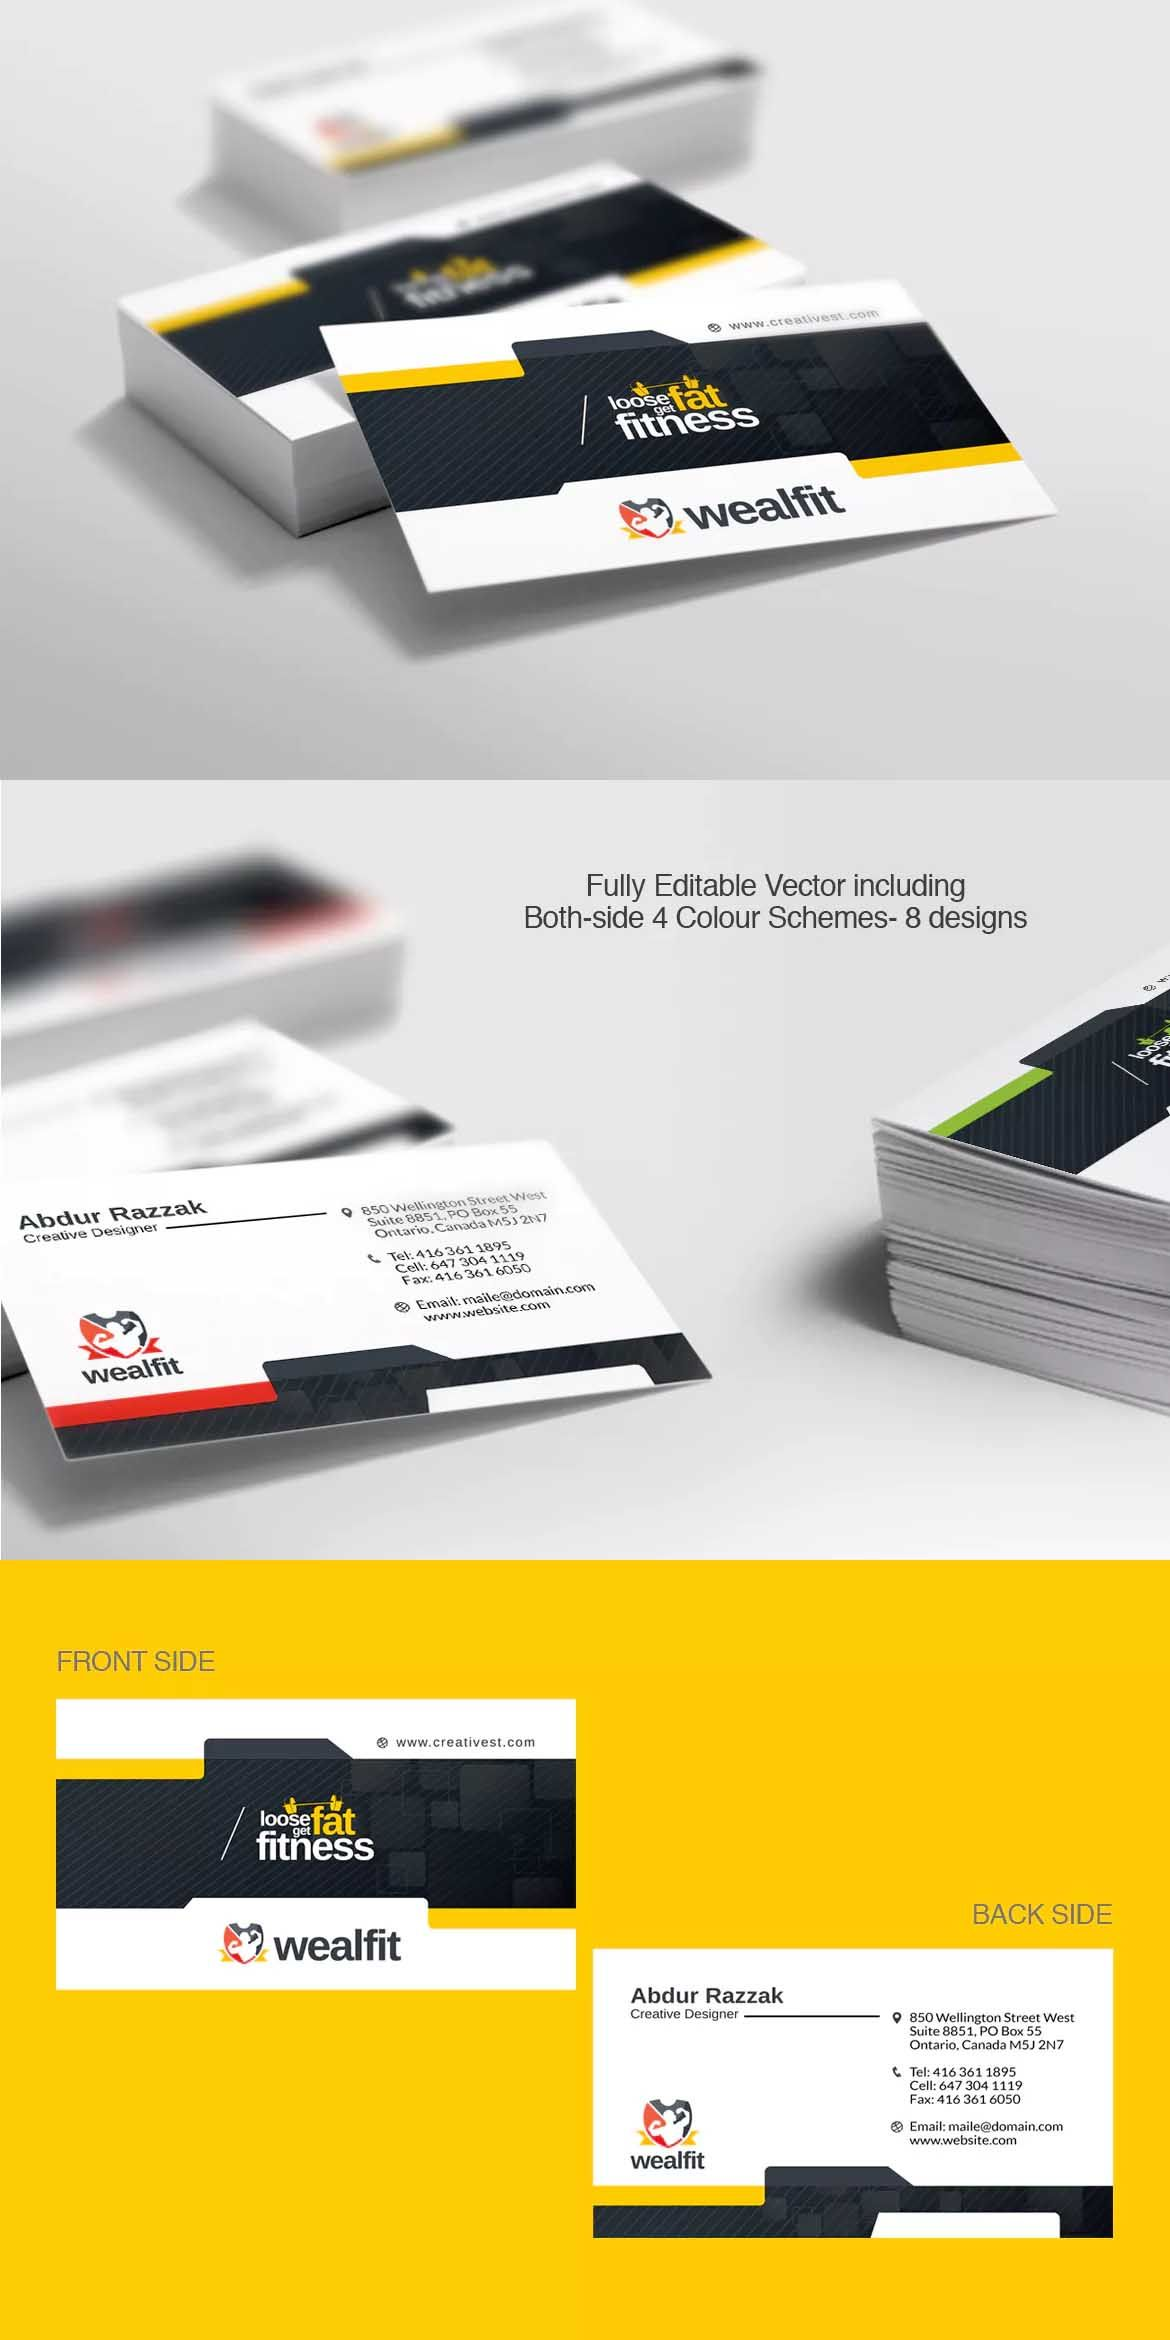 Fitness gym business card template eps pinterest fitness gym business card template eps friedricerecipe Choice Image